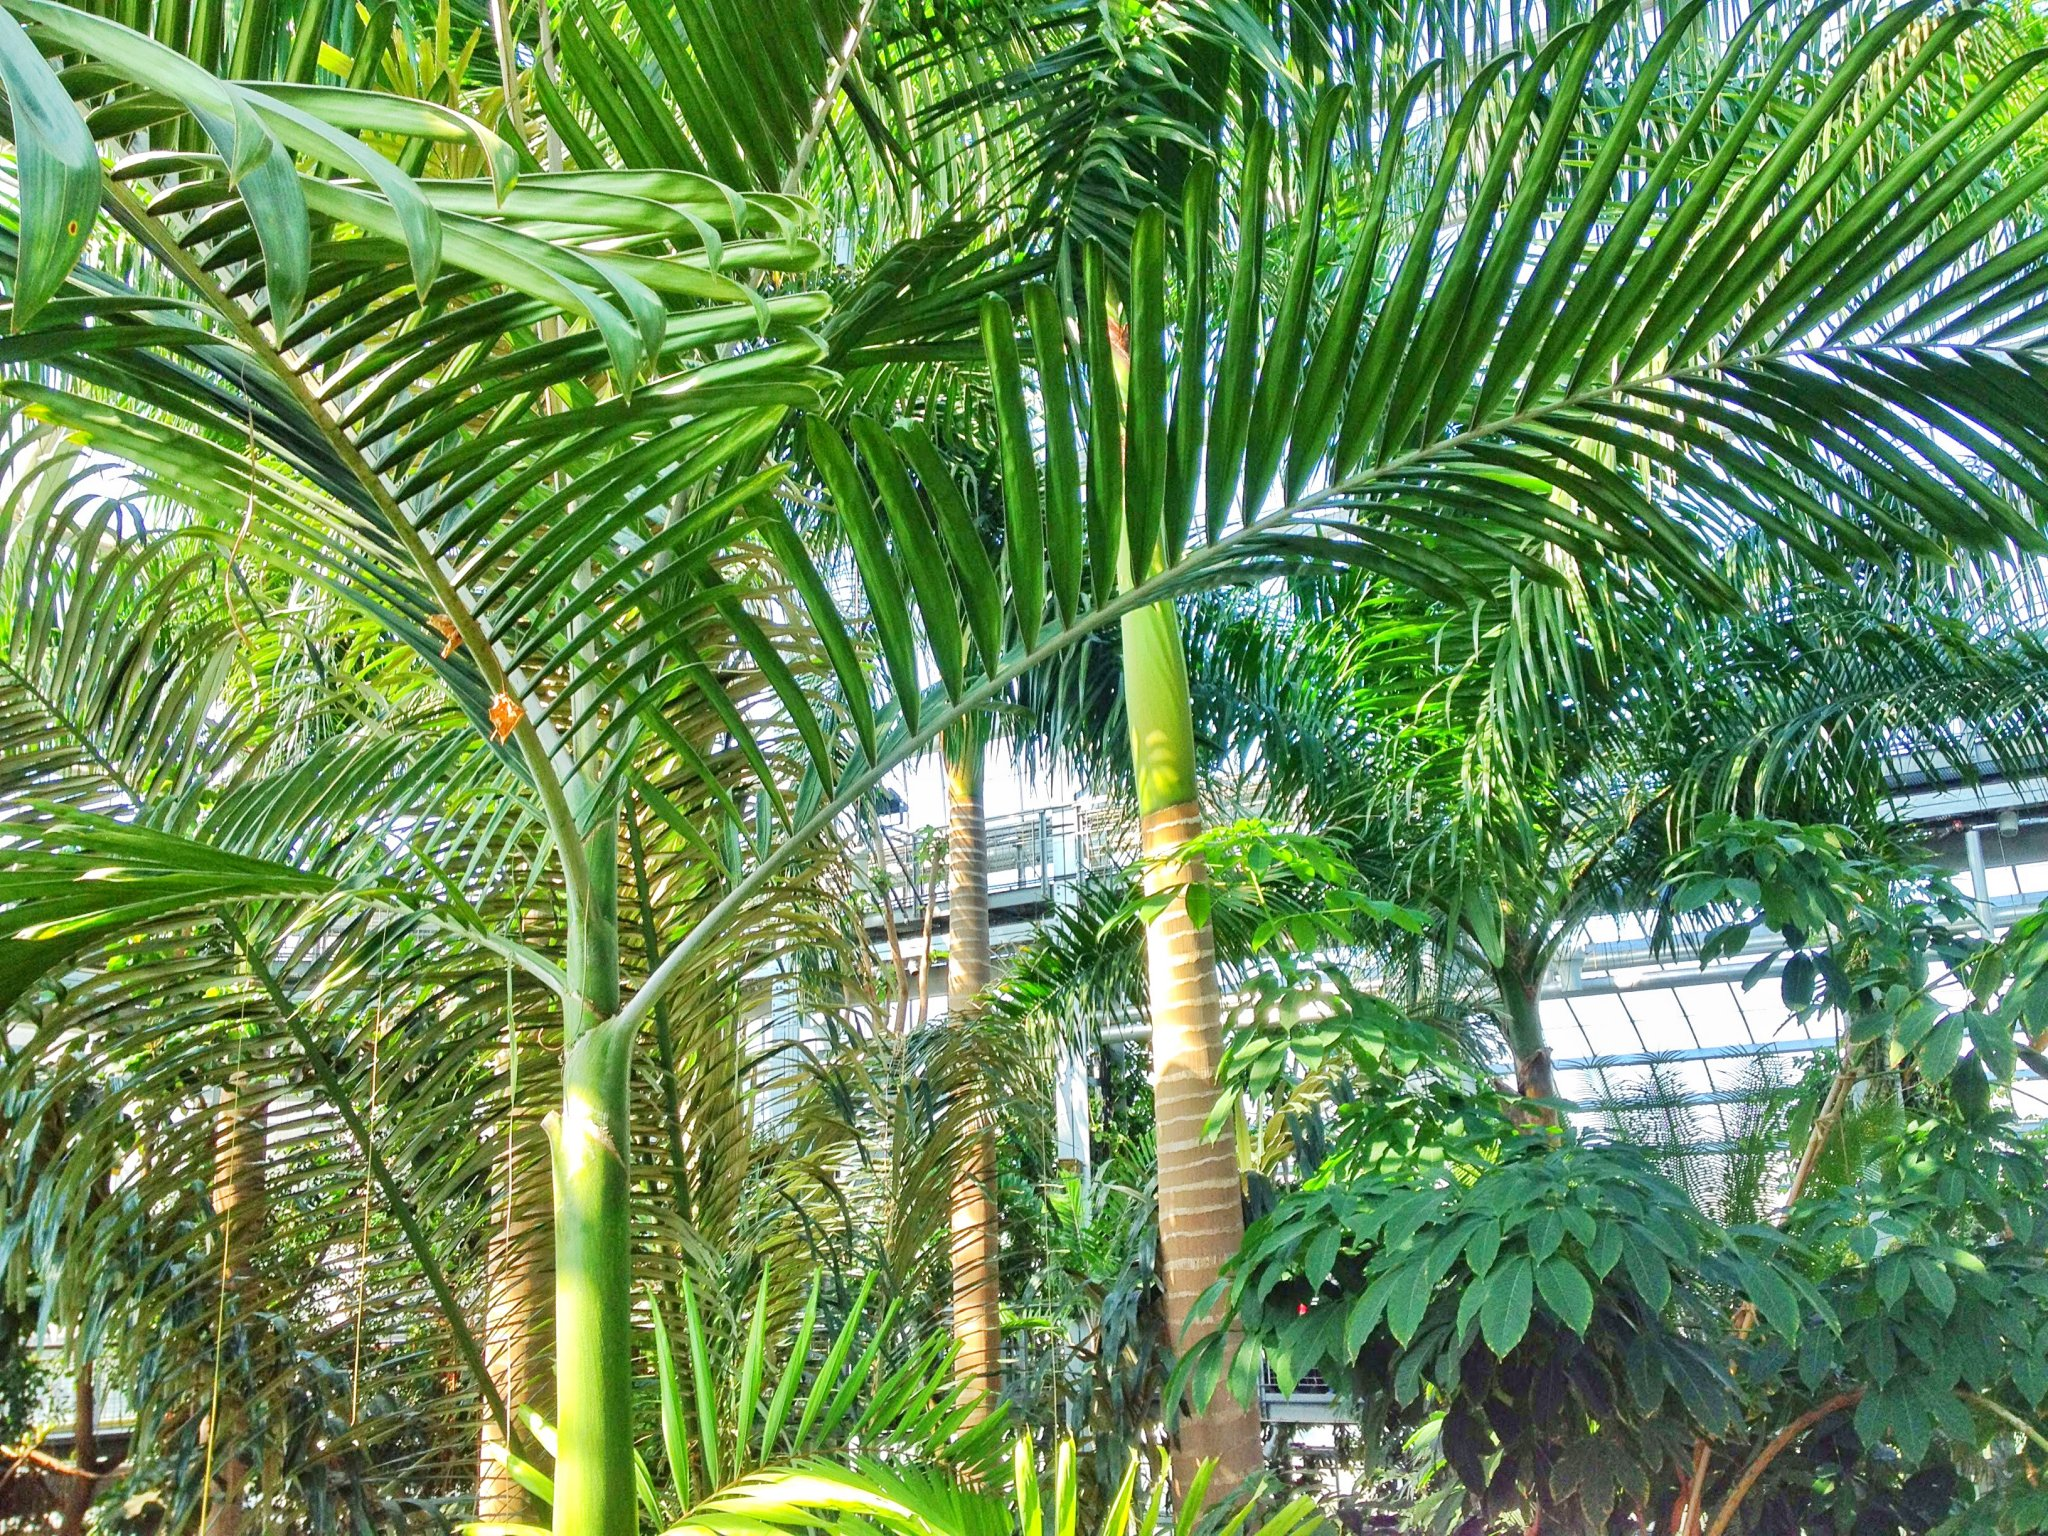 Guide to the Smithsonian: Look at all these amazing trees with big broad leaves in the Botanic Gardens